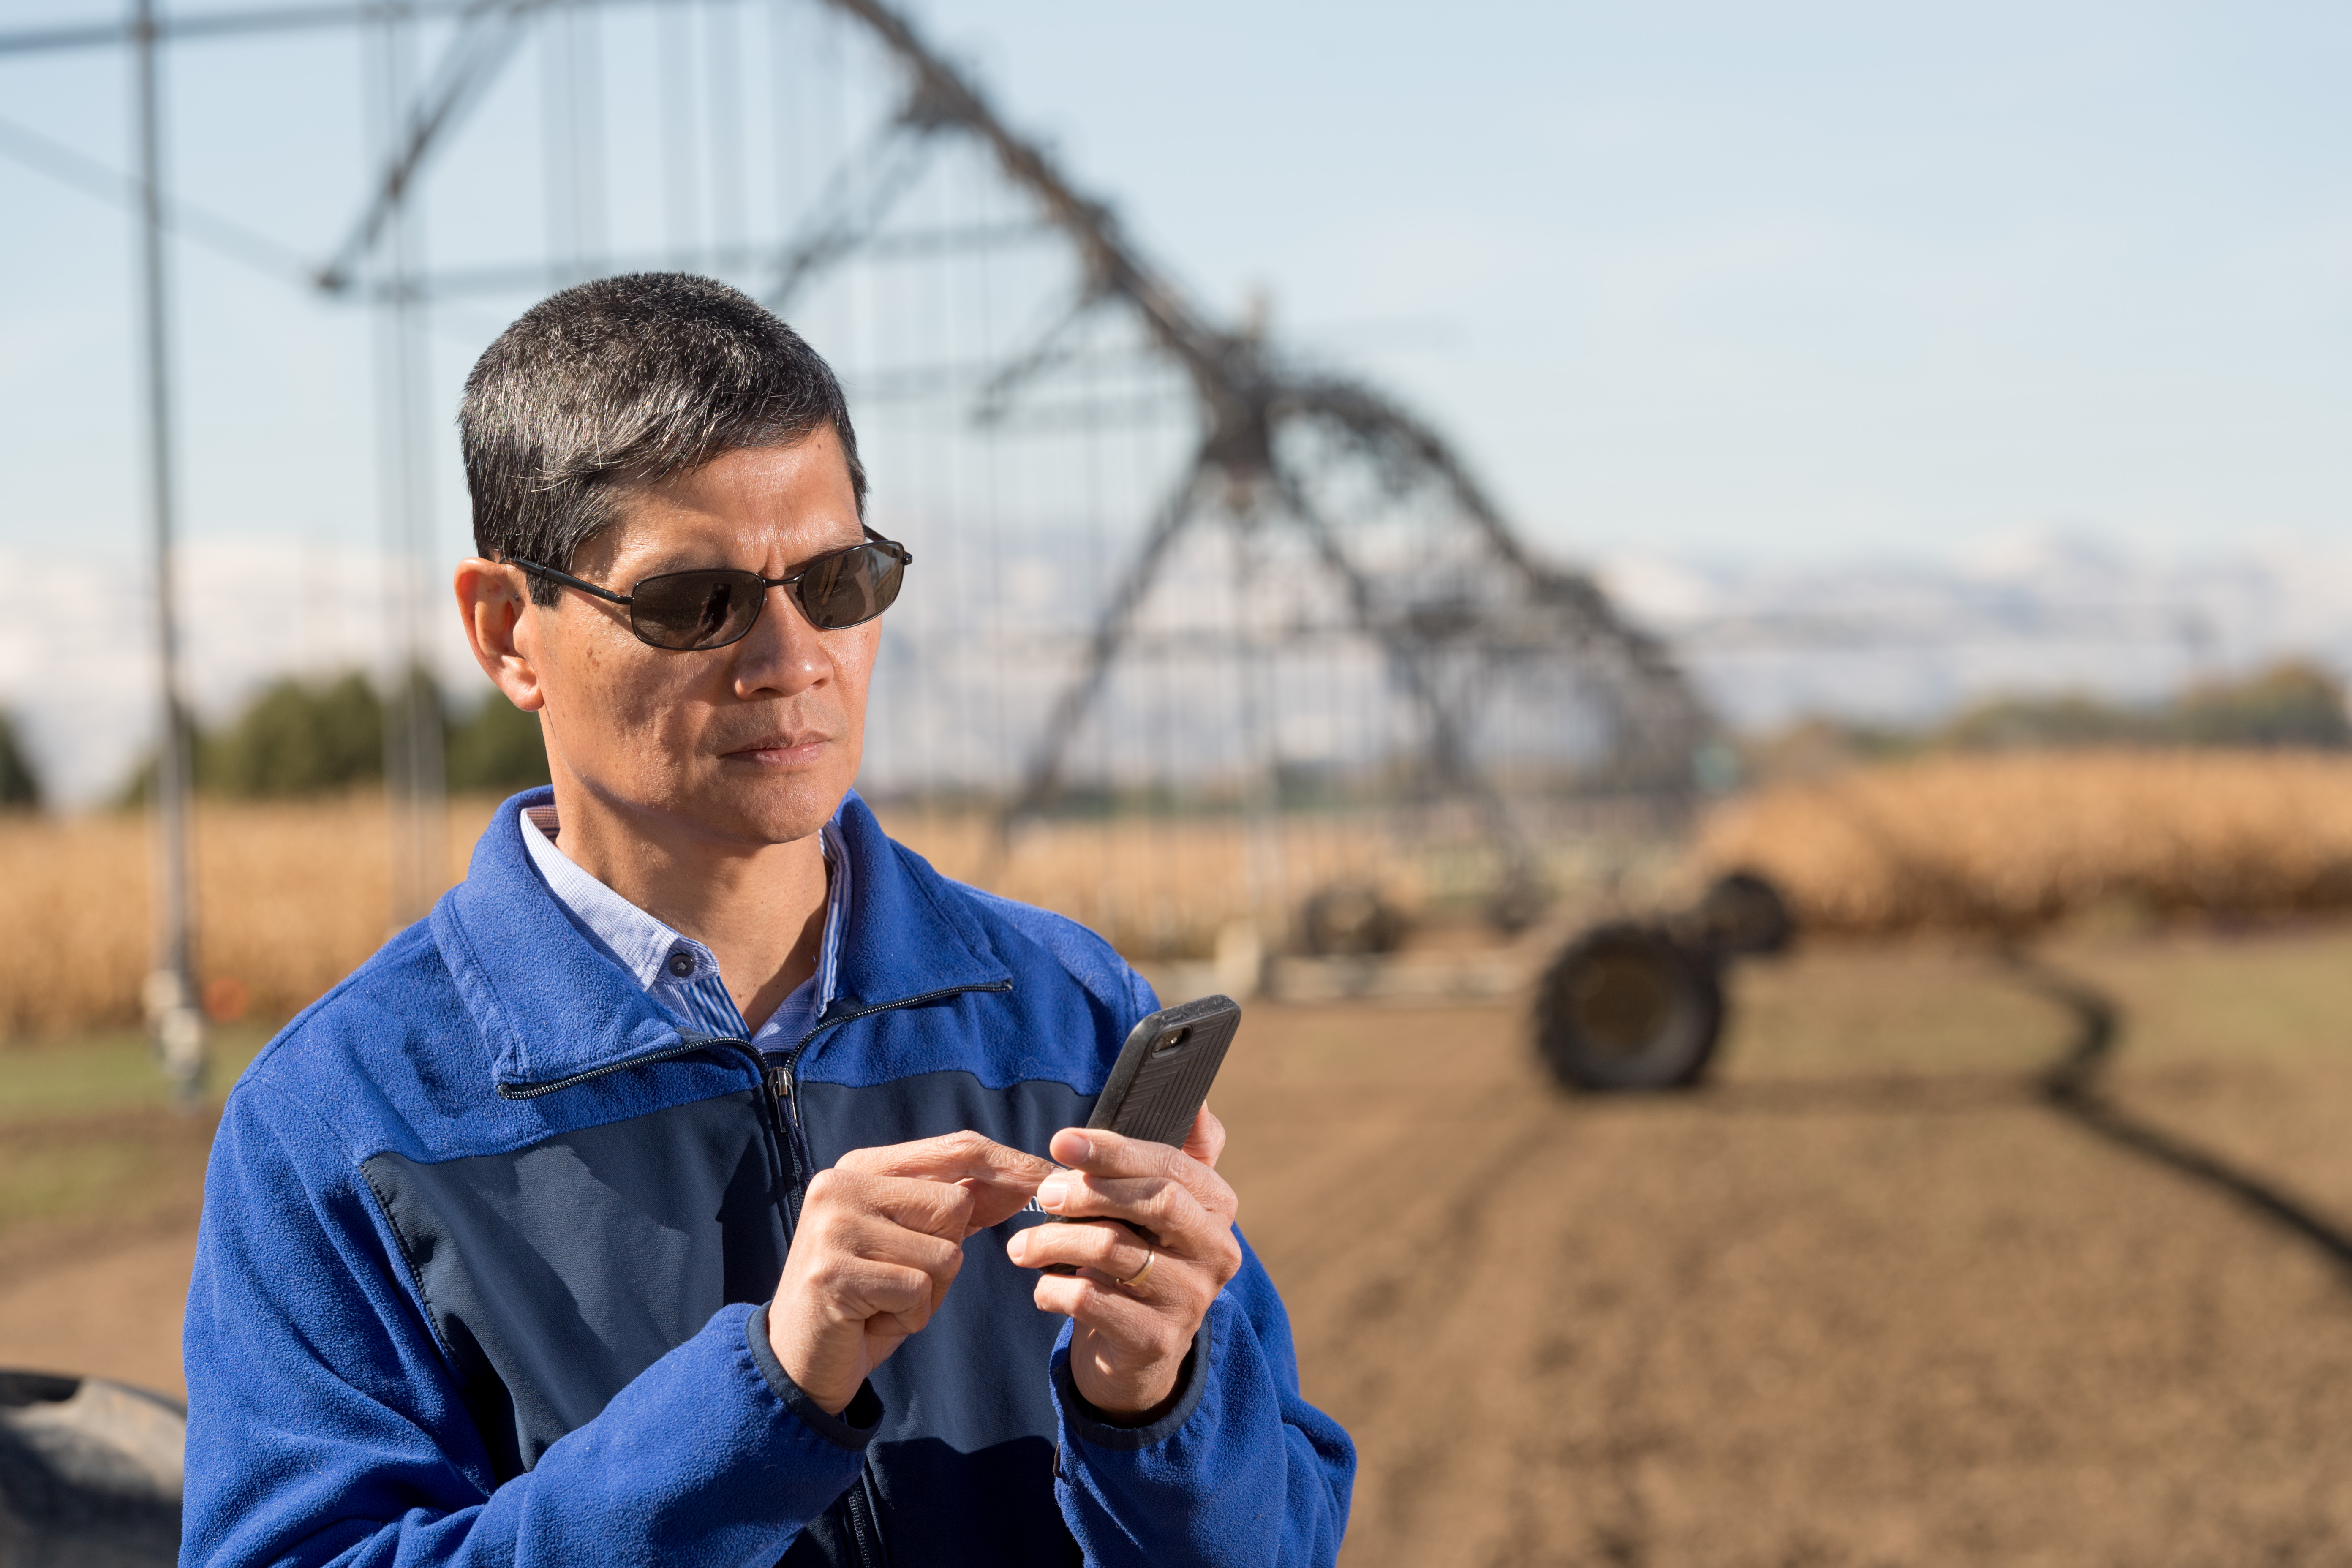 Irrigation scheduling from a smart phone